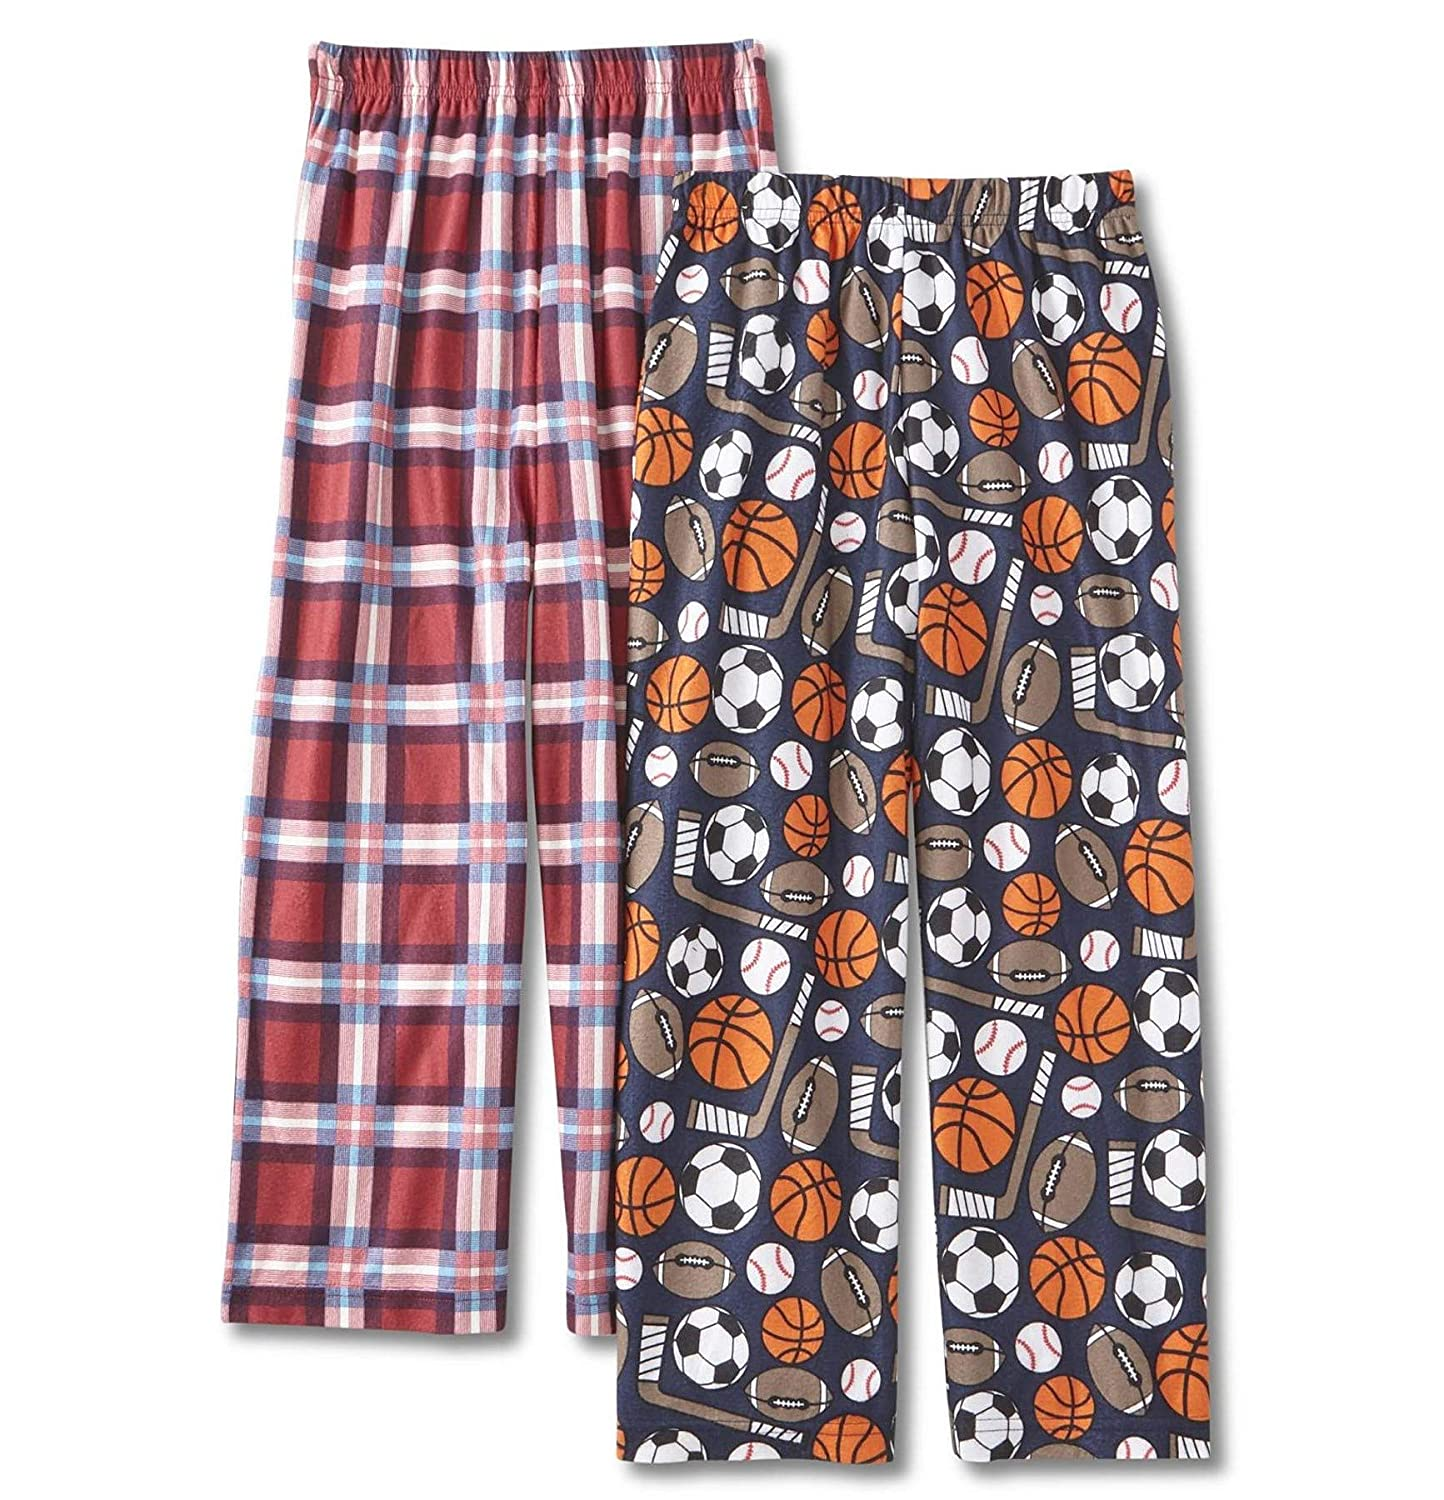 Joe Boxer Boys 2-Pack Pajama Pants Sleep Bottoms